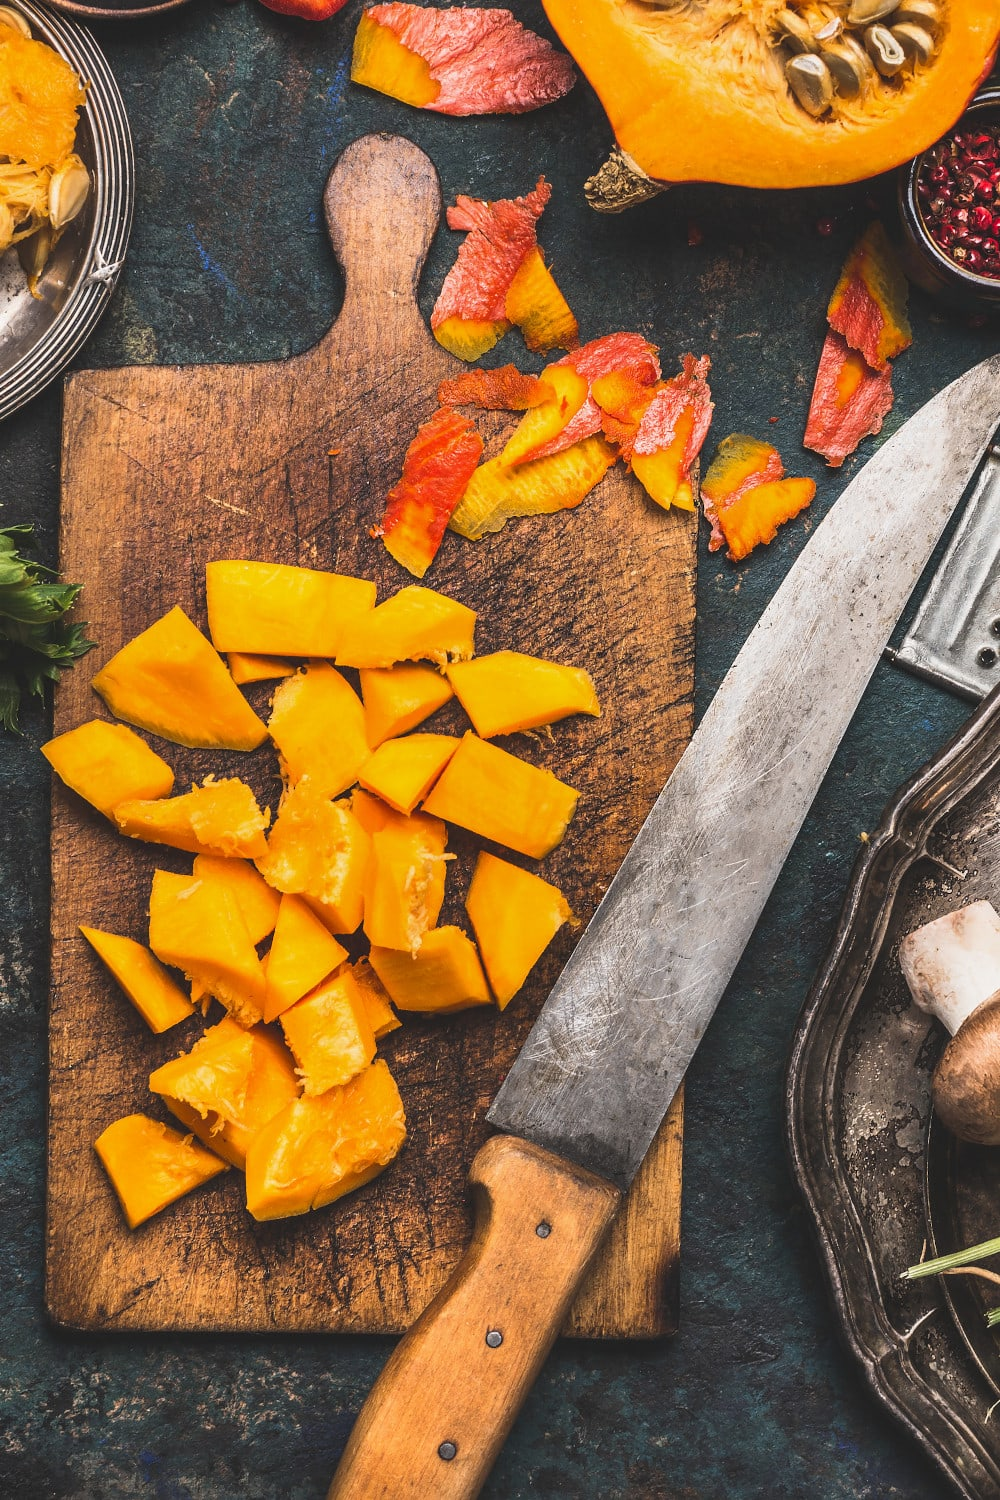 Rustic cutting board with chopped pumpkin and an old knife